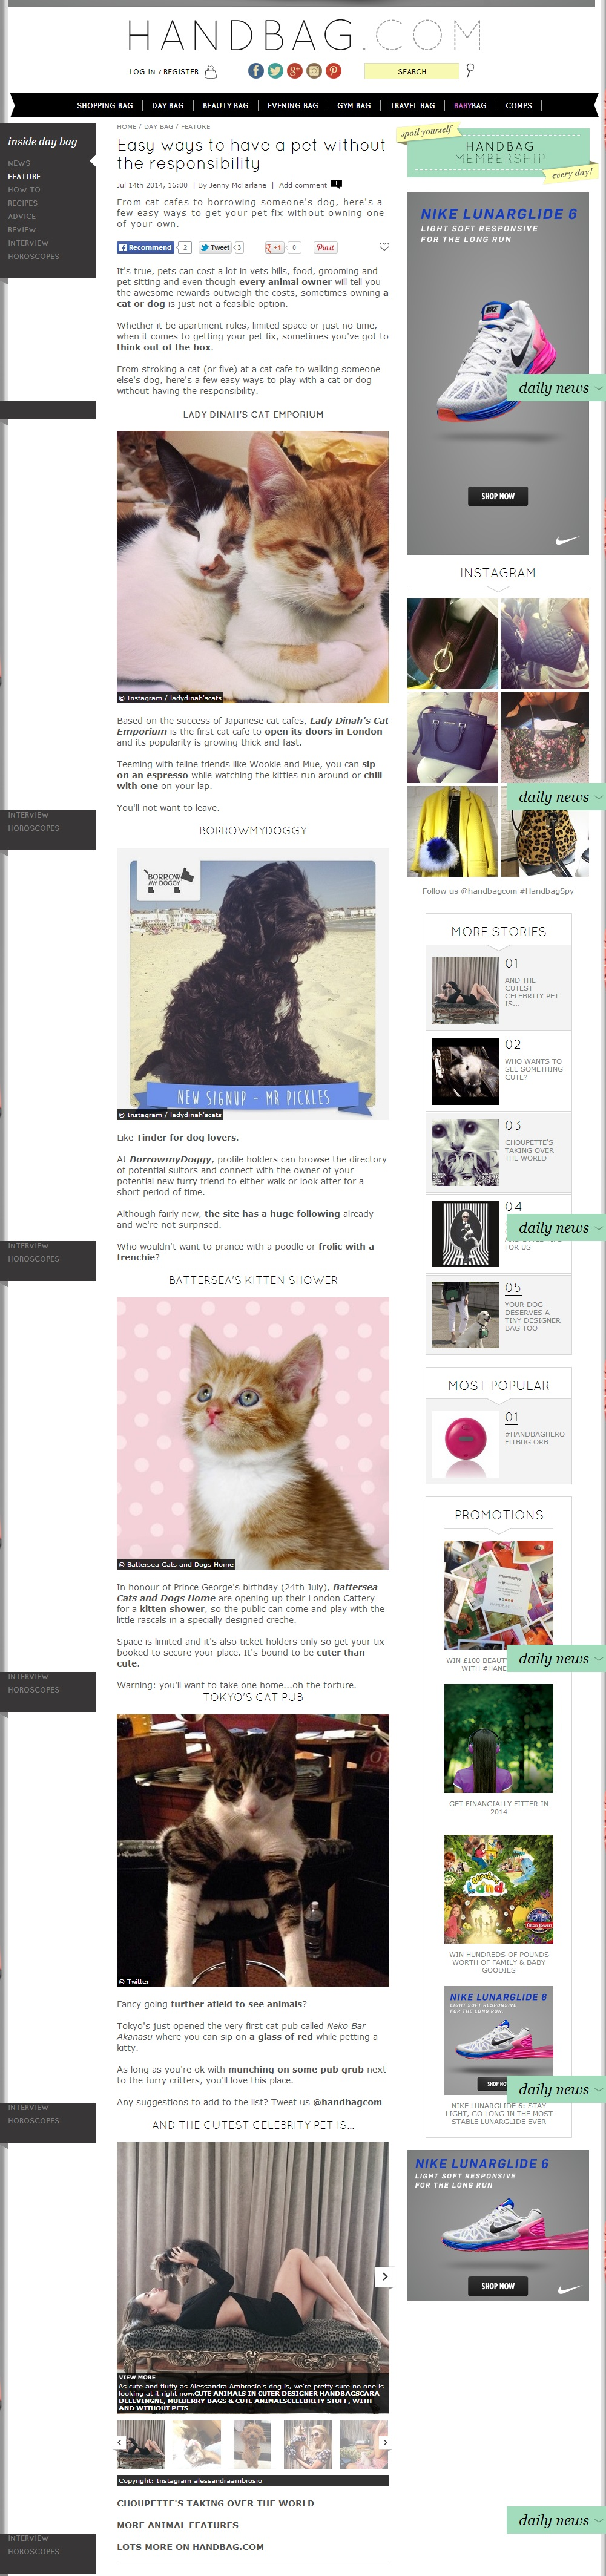 screencapture-www-handbag-com-day-bag-feature-a584052-easy-ways-to-have-a-pet-without-the-responsibility-html